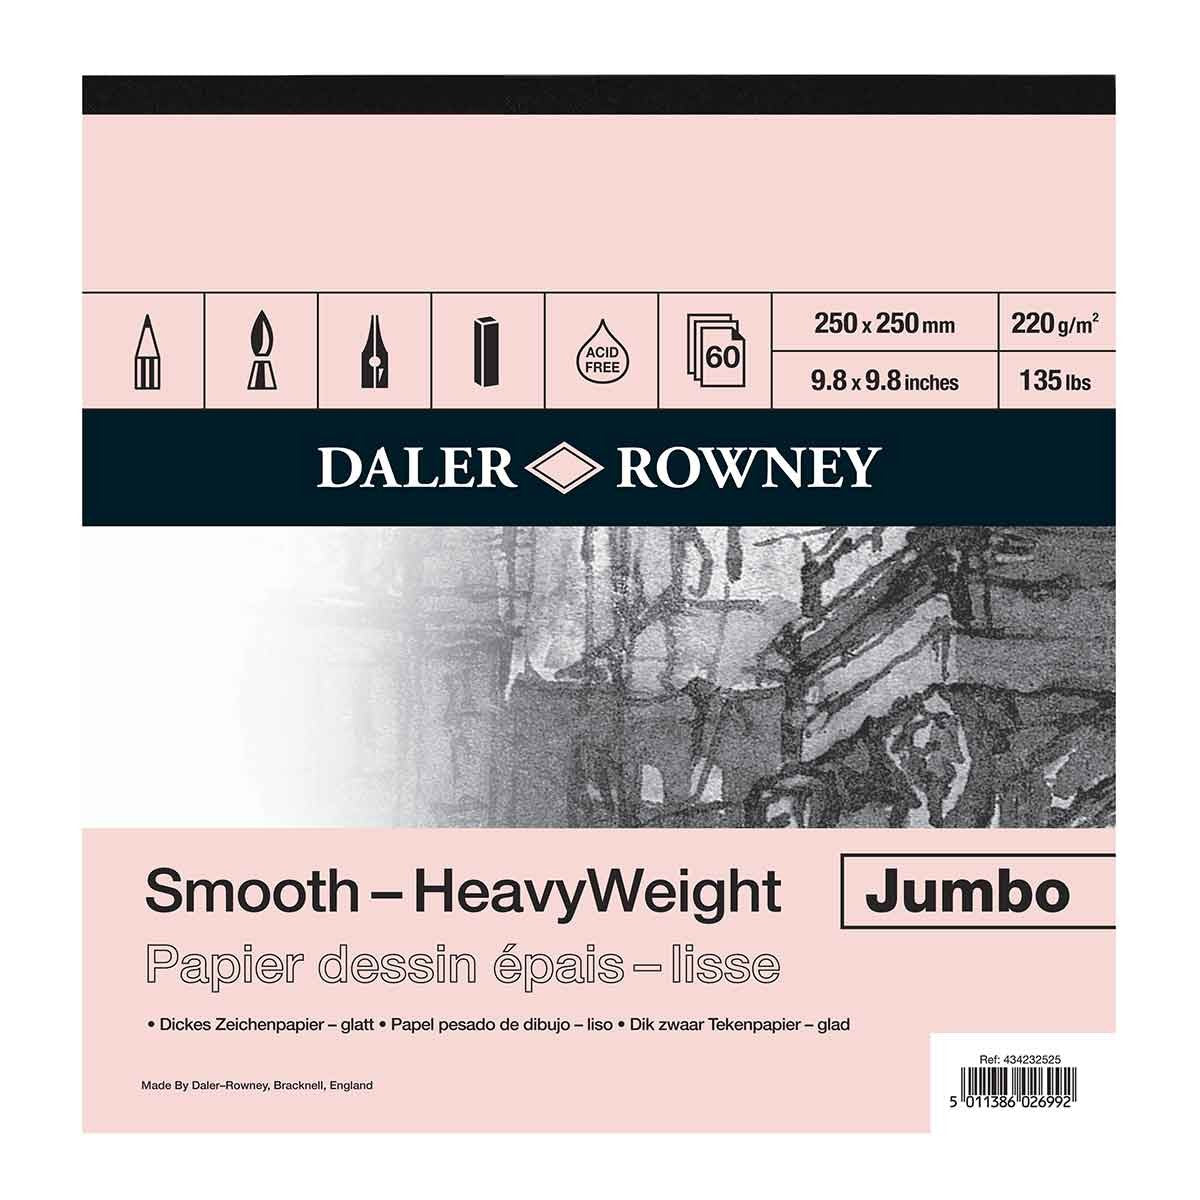 Daler Rowney Jumbo Heavyweight Cartridge Pad - 220gms